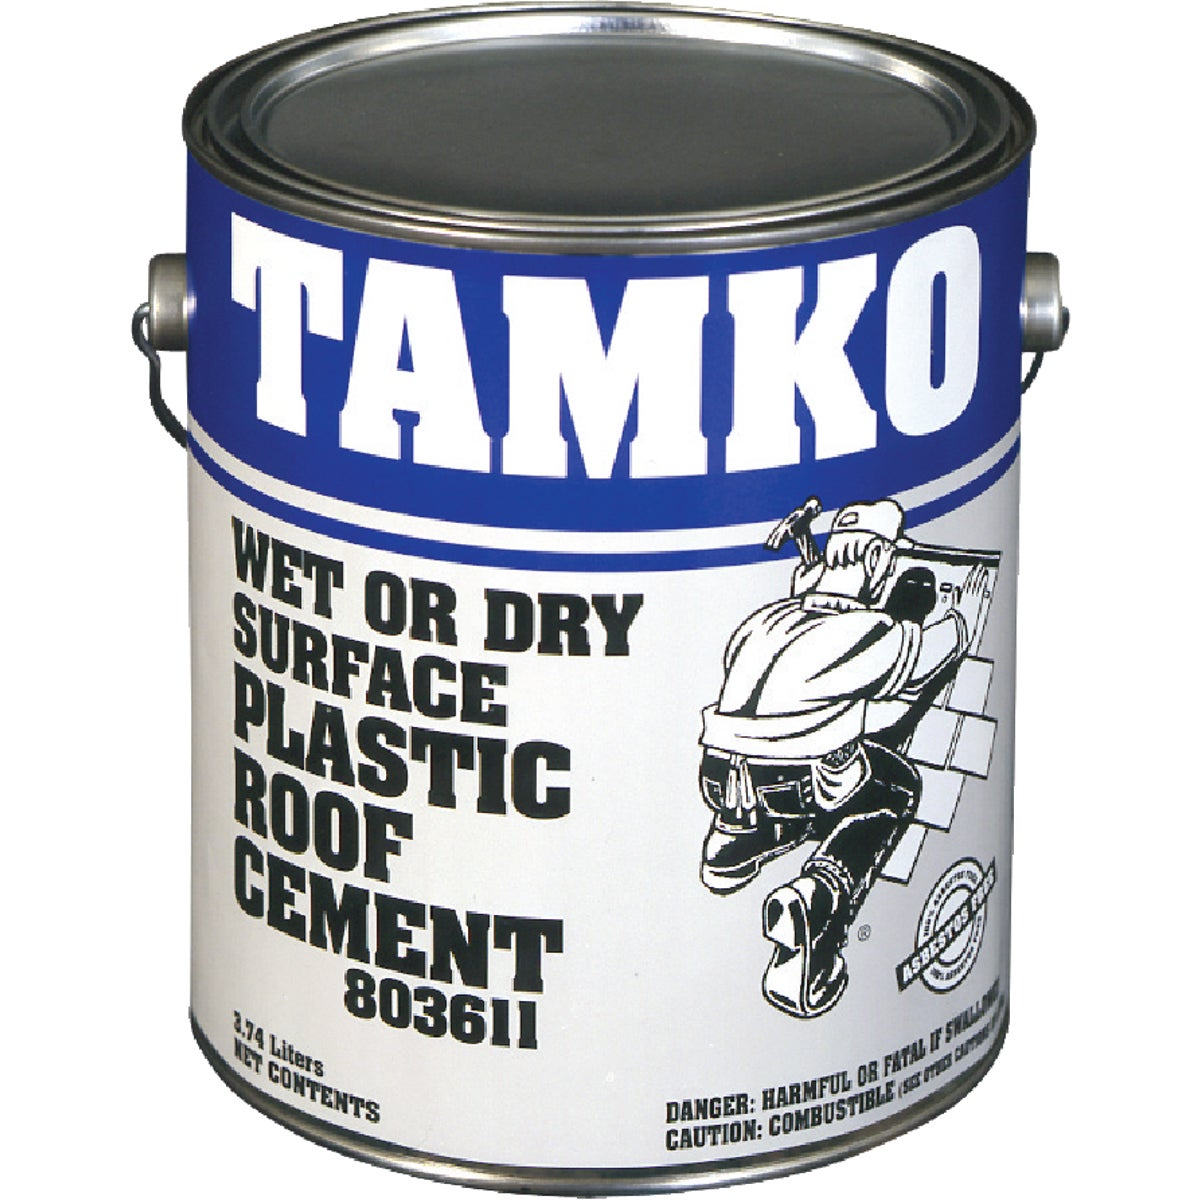 GAL WET SRFC ROOF CEMENT - 30001619 by Tamko Bldg Prod Inc